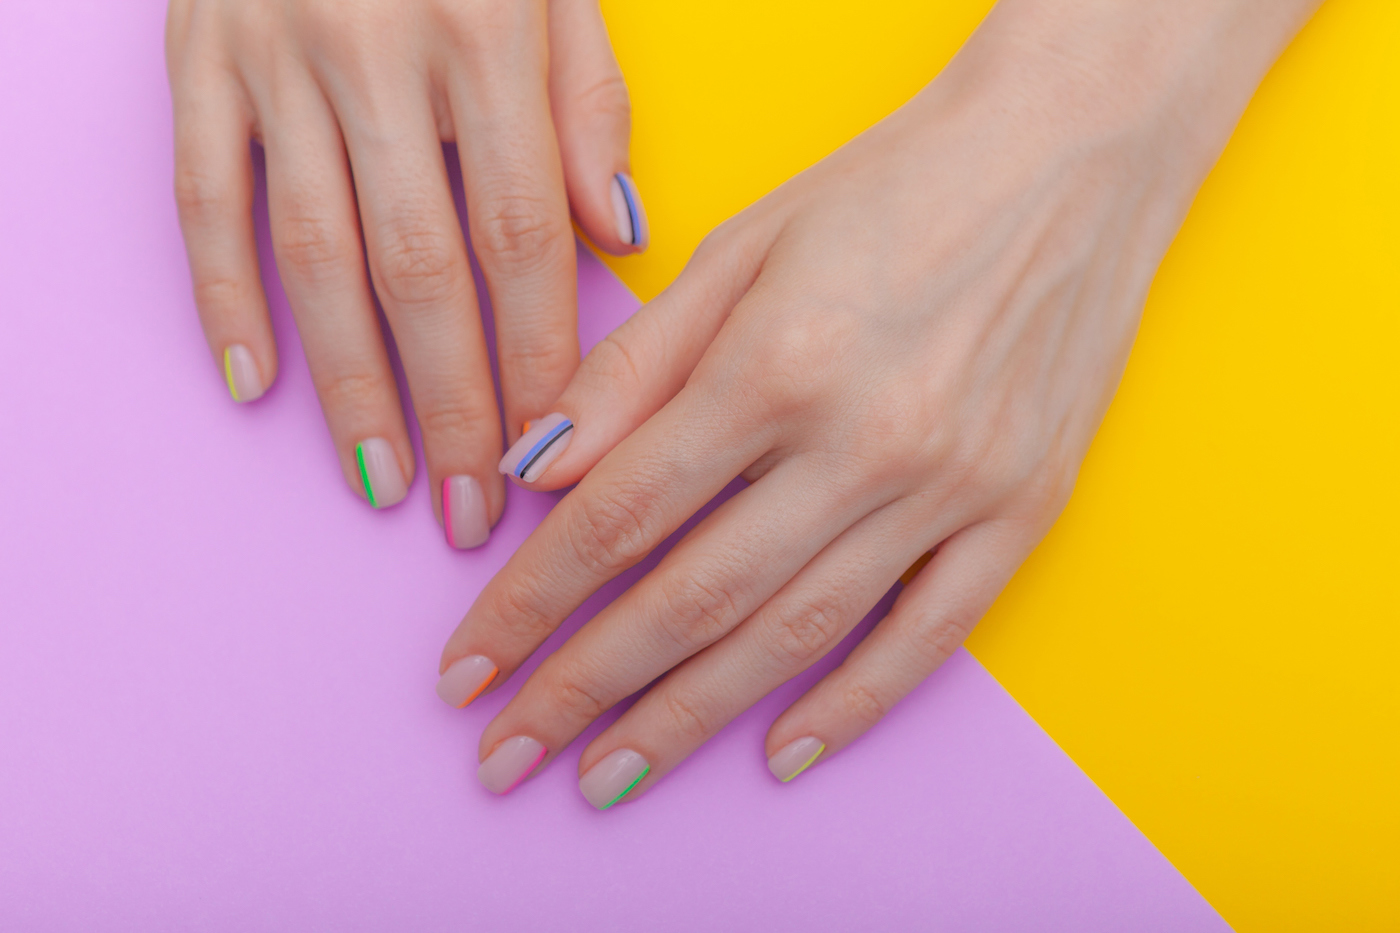 Thumbnail for Stick-on Manicures Last Just As Long As Gels With None of the Damage to Your Nails